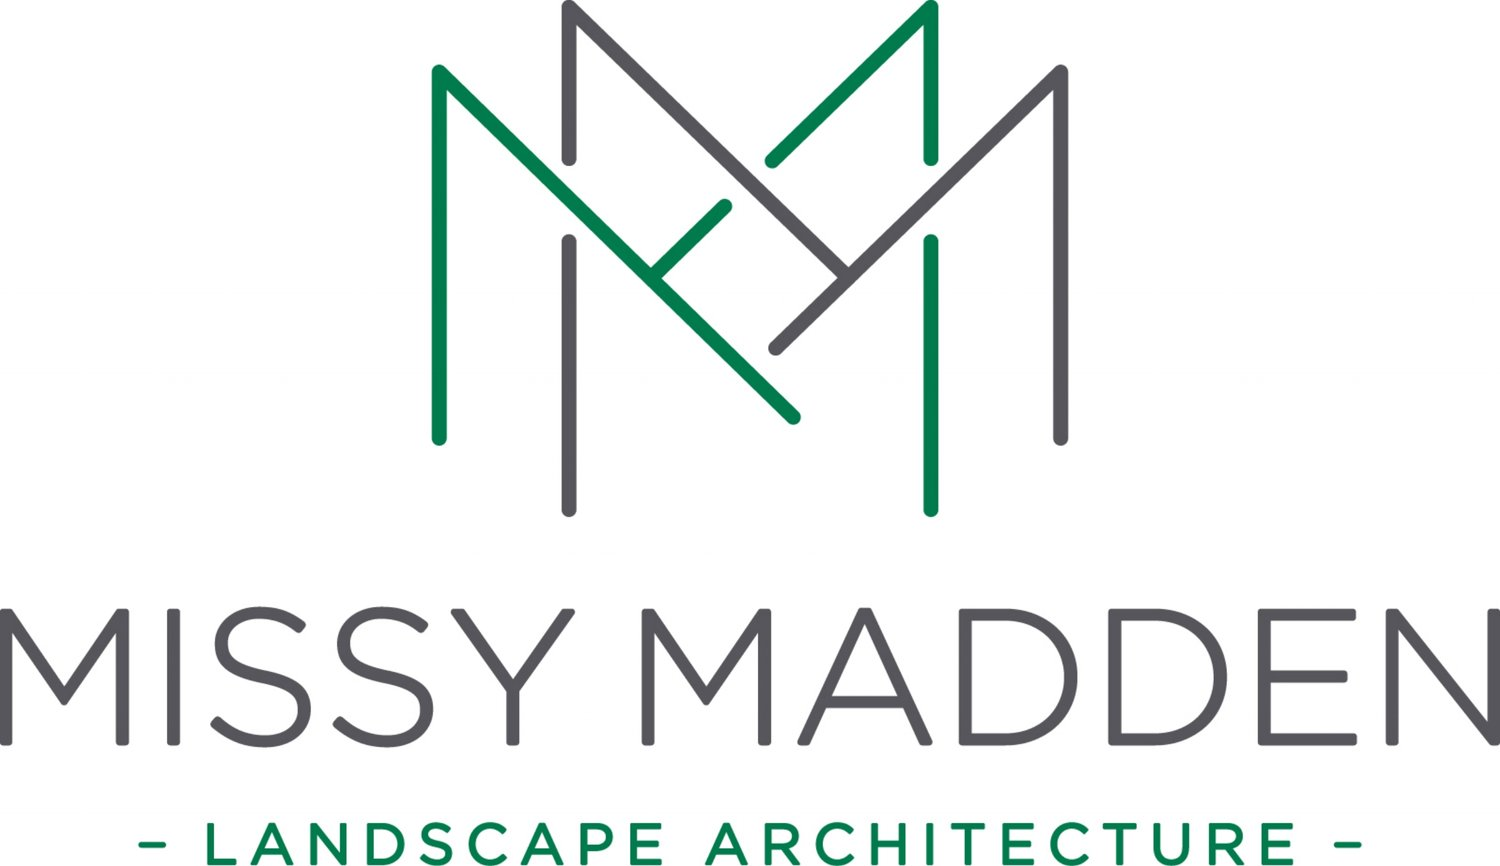 Missy Madden Landscape Architecture